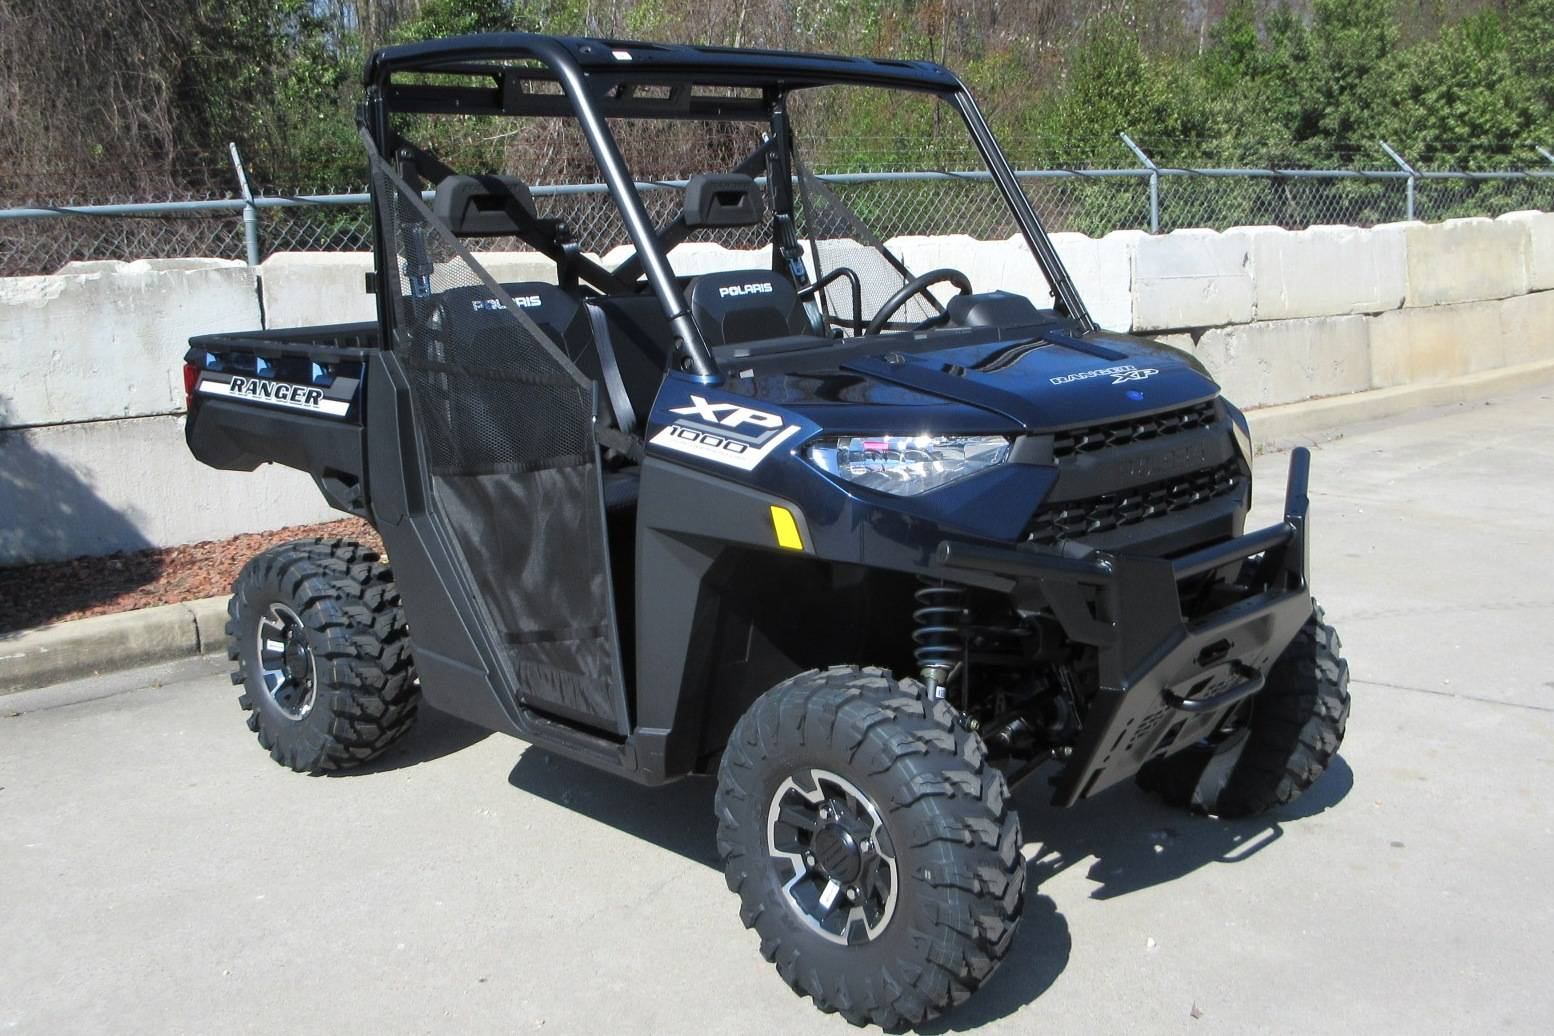 2020 Polaris Ranger XP 1000 Premium in Sumter, South Carolina - Photo 3